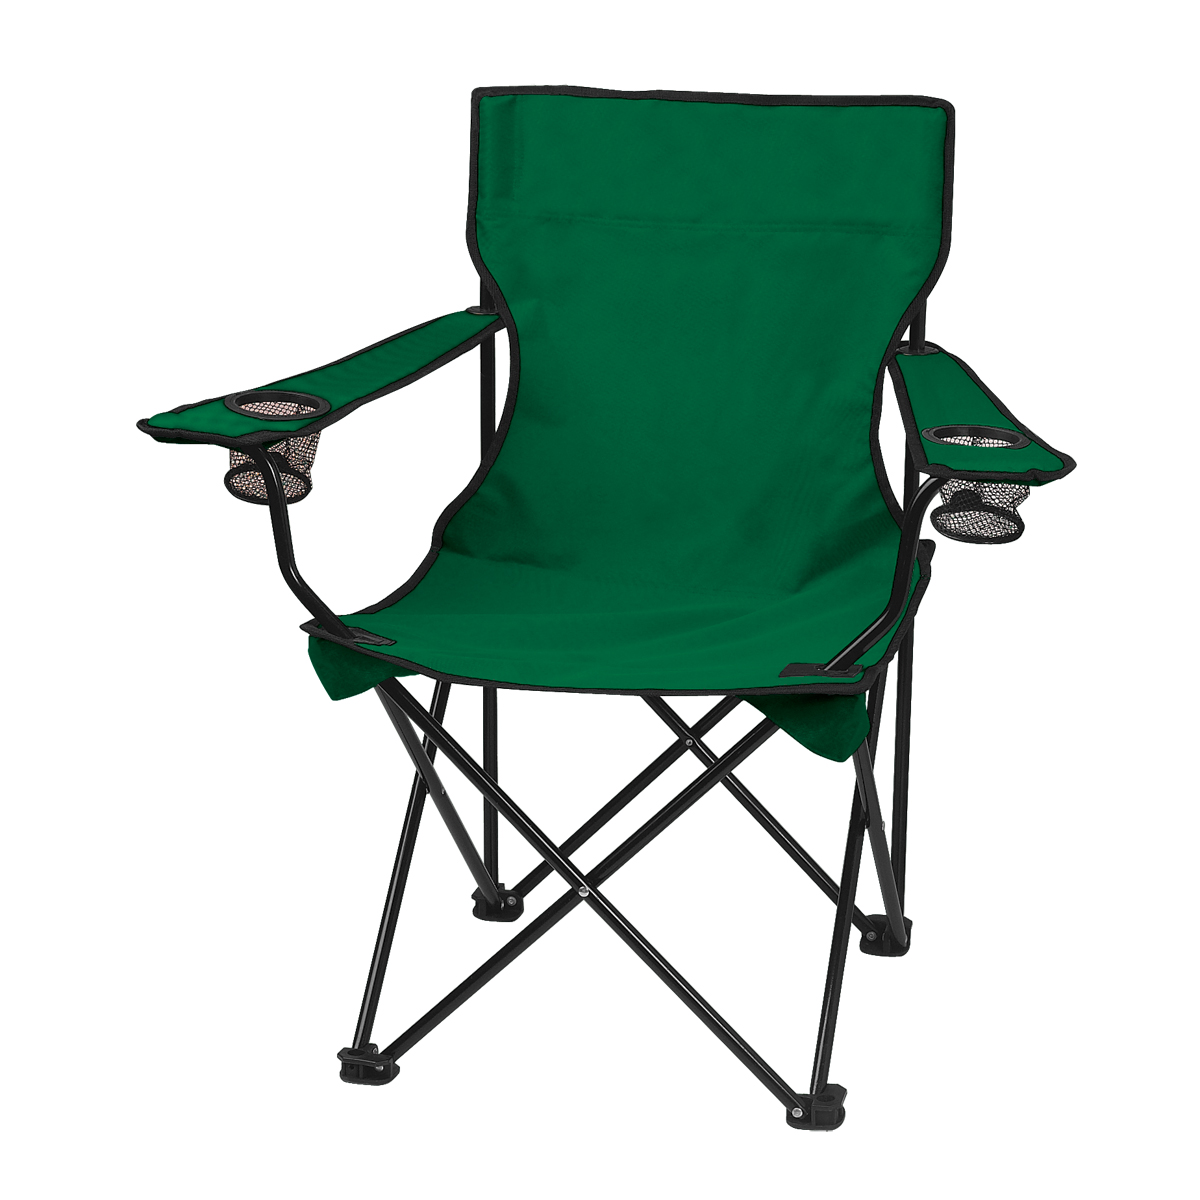 Chic folding camping chairs in a bag ... personalized folding chair with carrying bag additional photo #2 ... wfjylmg